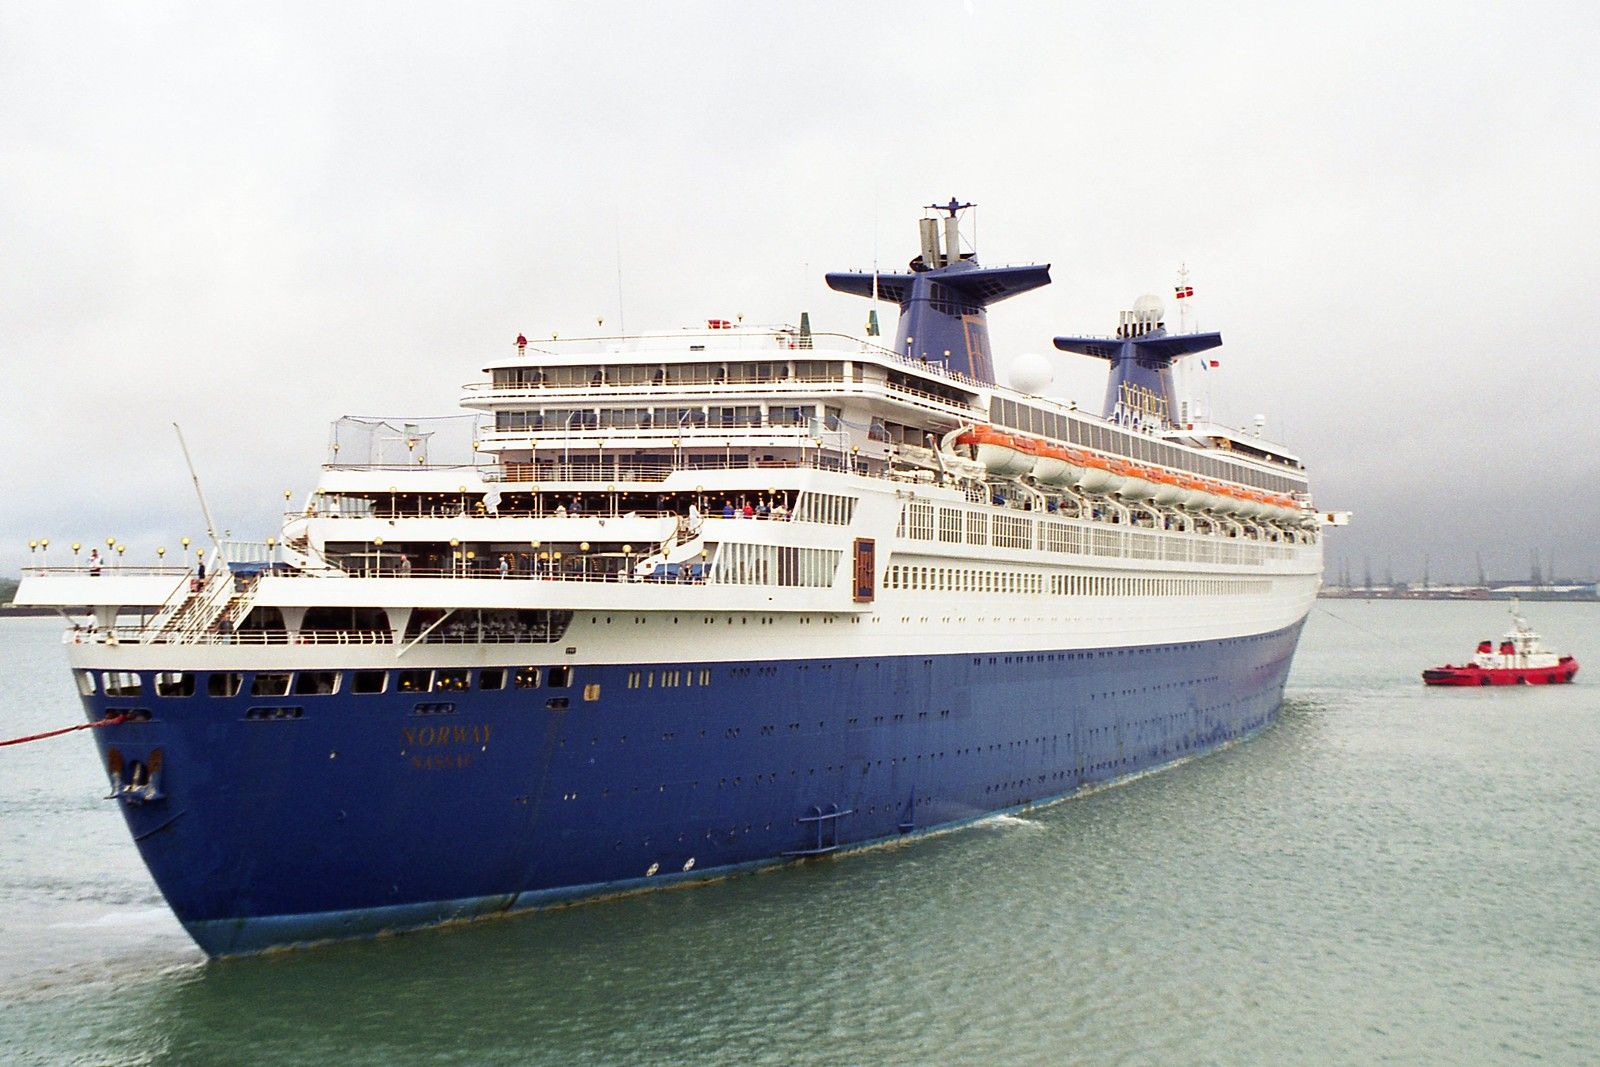 Information on the SS Norway Cruise Ship